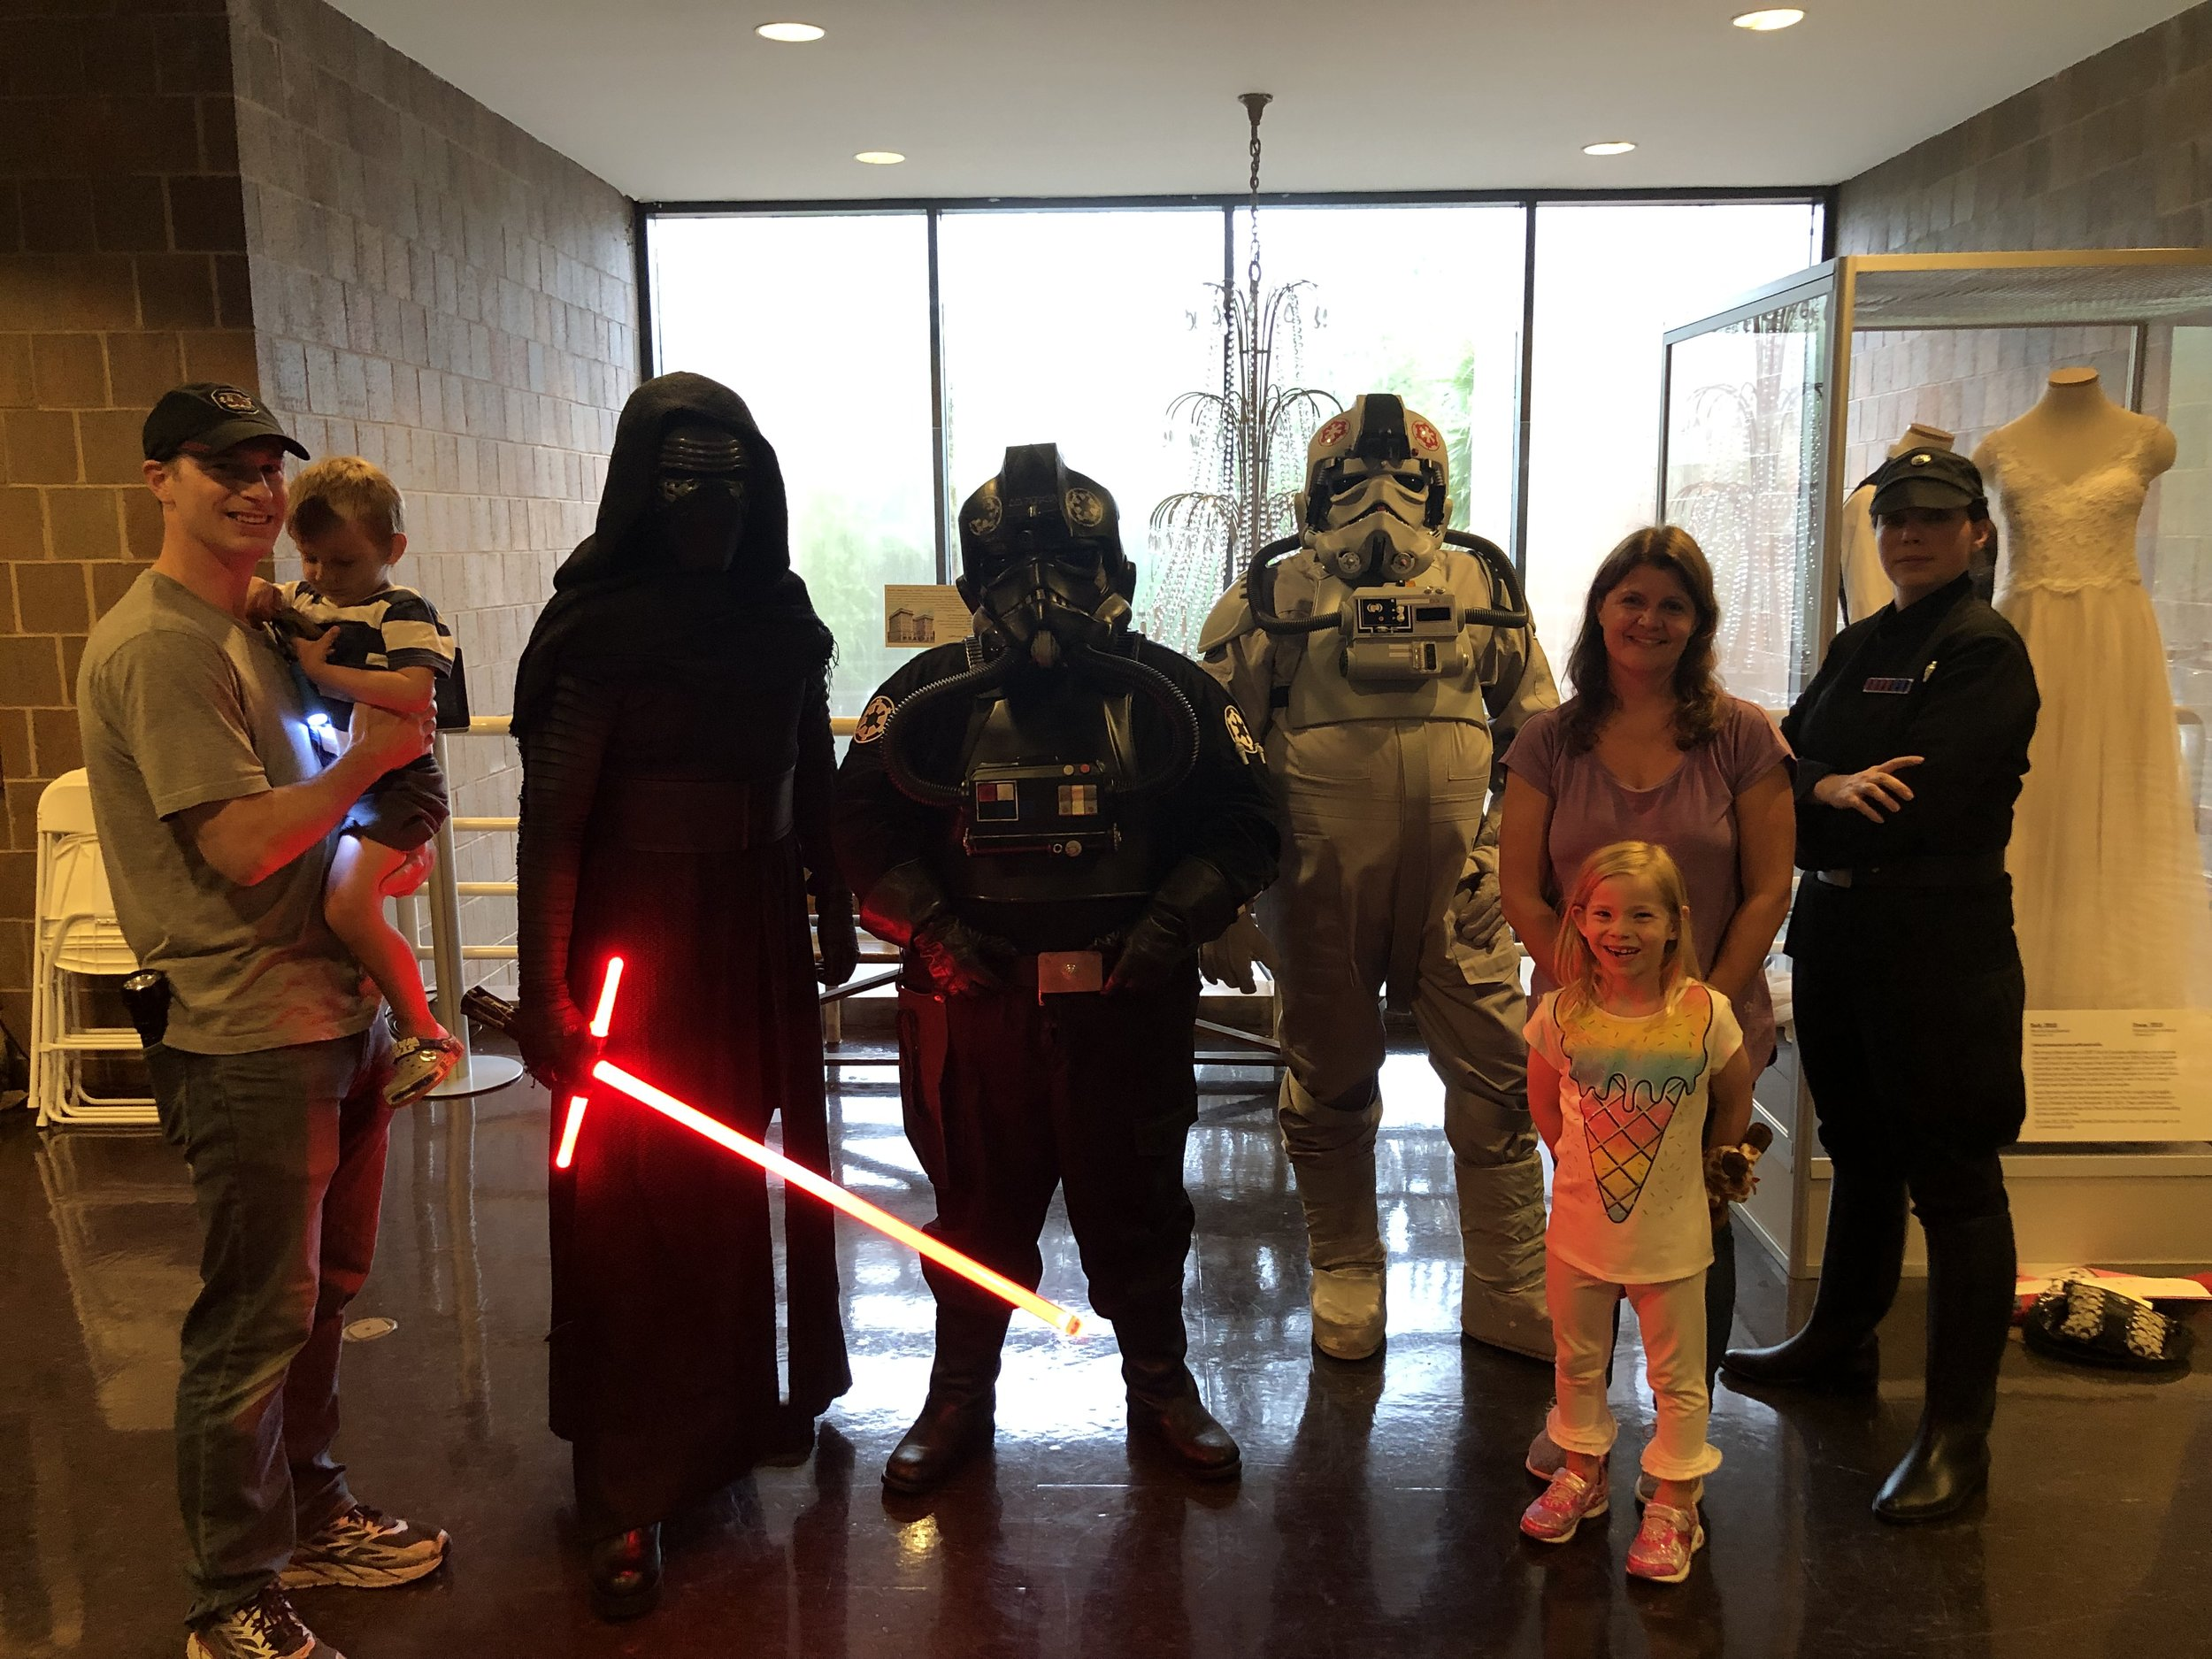 We enjoyed seeing and posing with some famous Star Wars characters at Nighttime at the Museum!